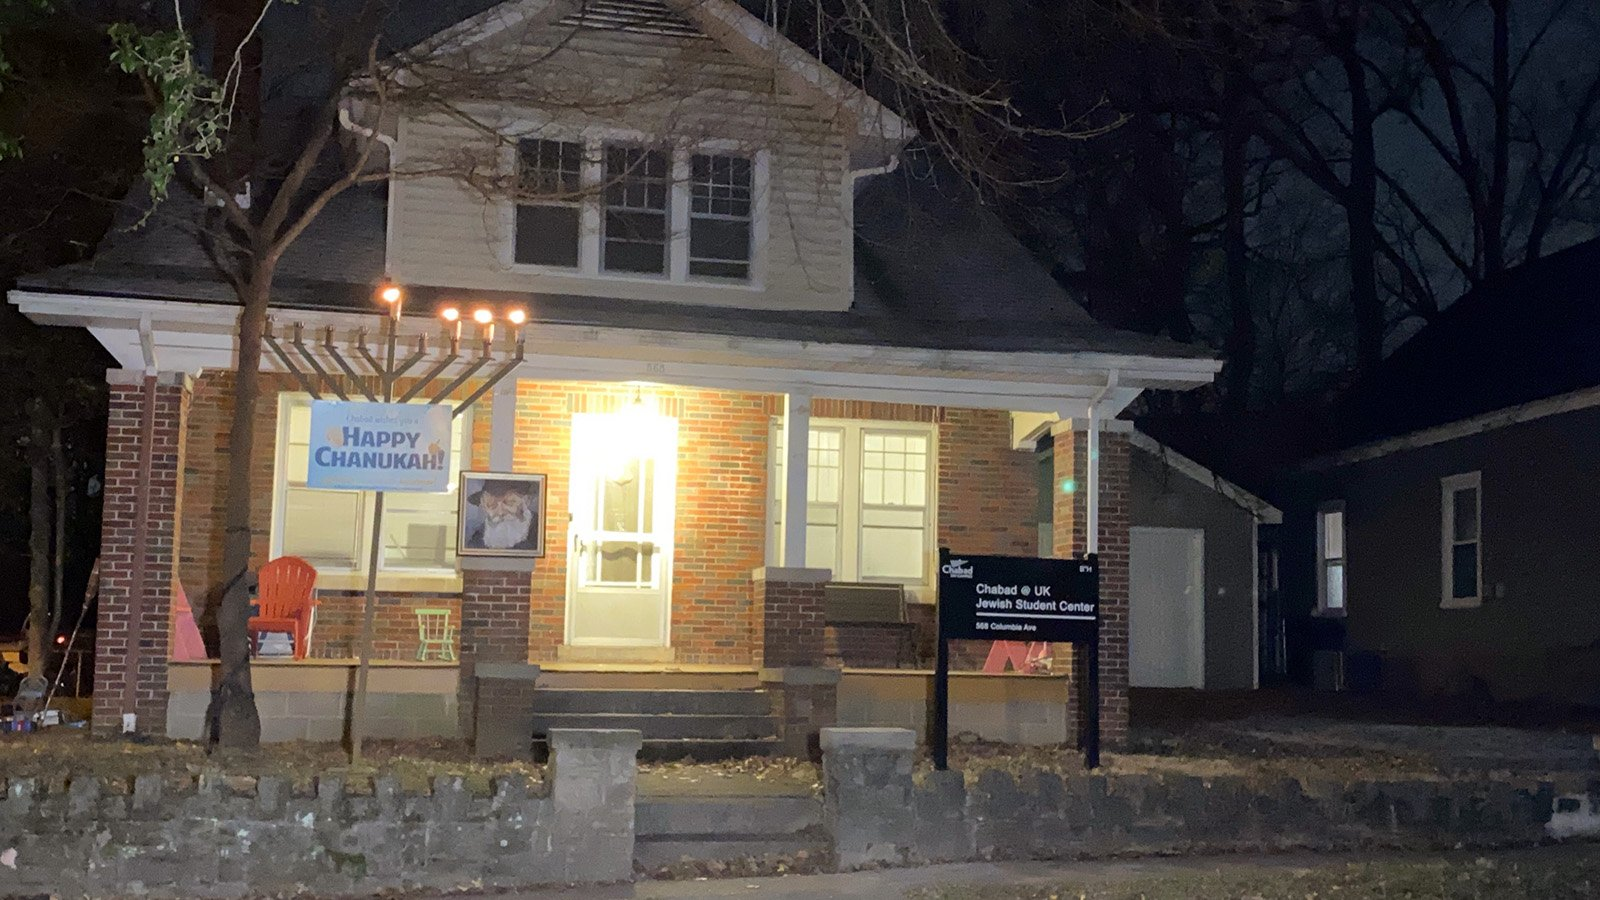 This photo was taken on Dec. 12, 2020, shortly after a man shouting anti-Semitic epithets attacked a participant in a menorah-lighting event outside the Jewish Student Center at the University of Kentucky at Lexington. Photo courtesy of Rabbi Shlomo Litvin